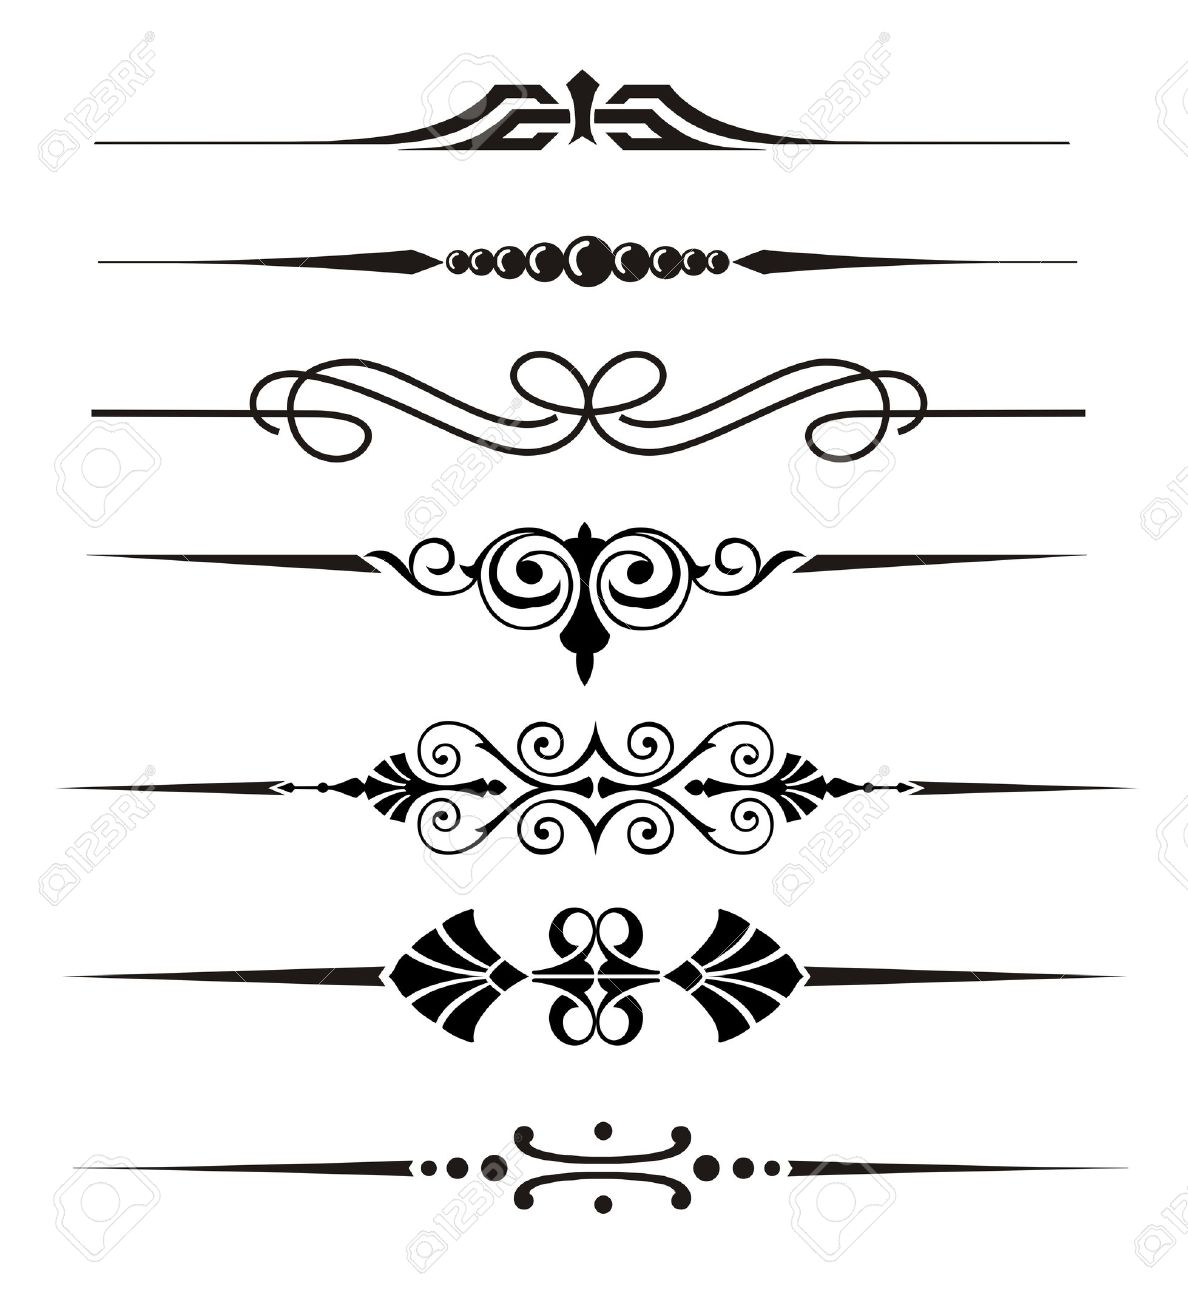 Vecter divider ornaments and graphical elements Stock Vector - 5550537